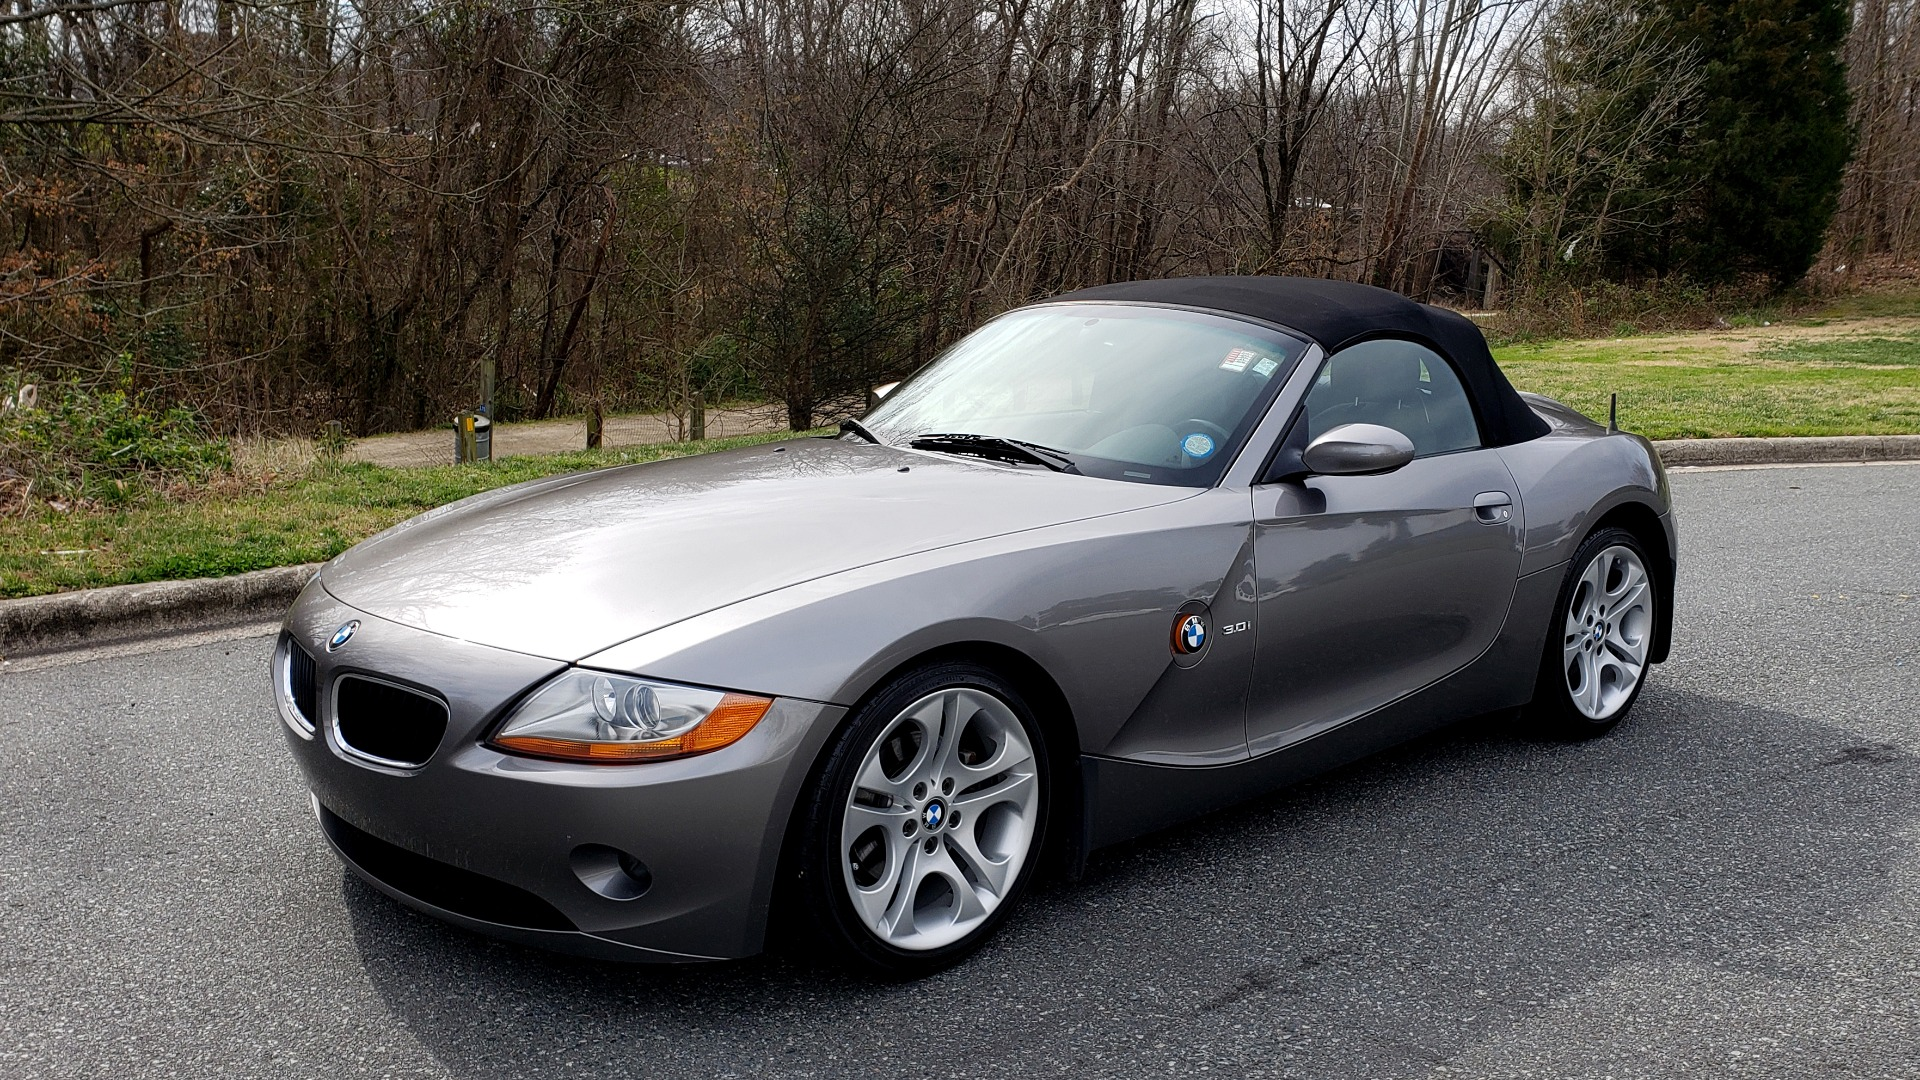 Used 2003 BMW Z4 3.0i ROADSTER / 6-SPD MAN / PREMIUM PKG / SPORT PKG / HTD STS for sale Sold at Formula Imports in Charlotte NC 28227 1